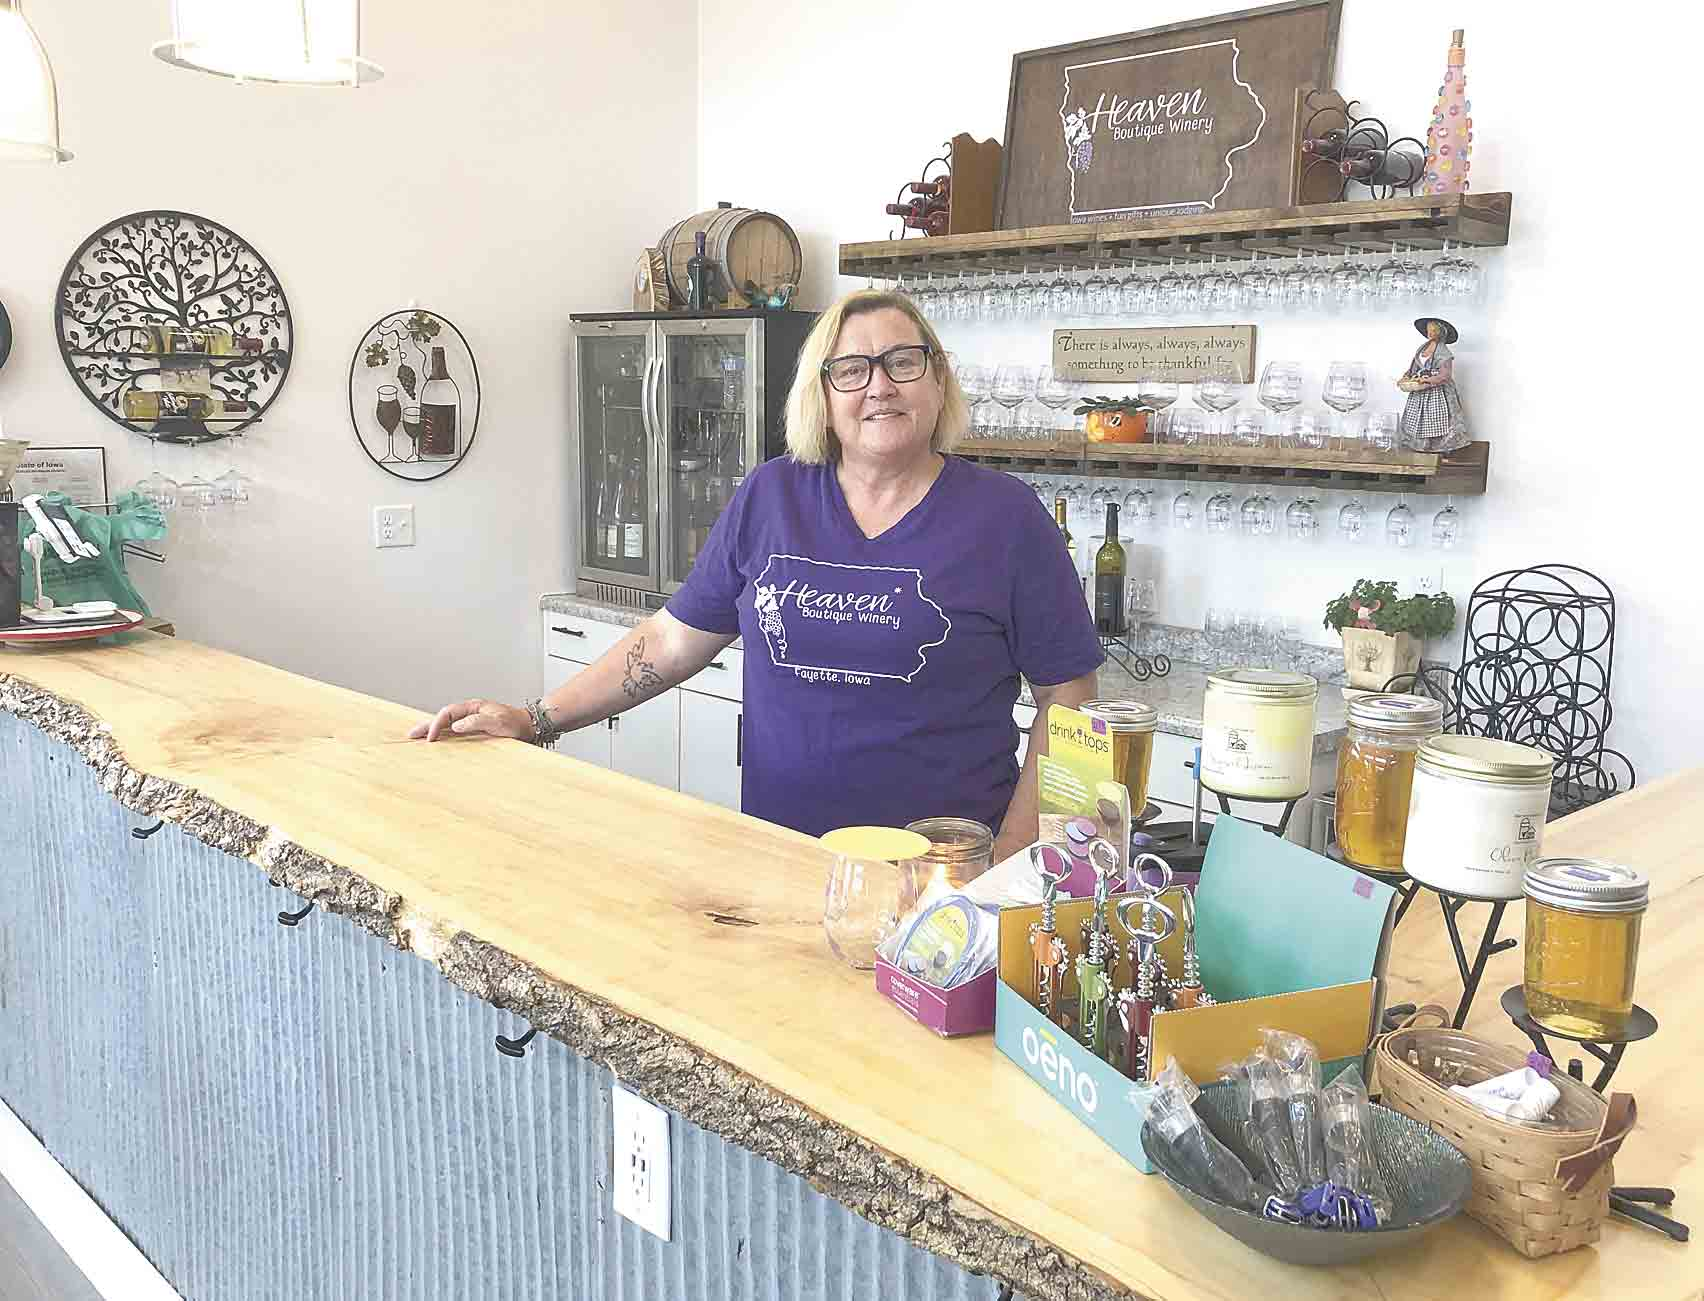 Lisa Goodwin isn't sure yet whether she will open Heaven Boutique Winery when bars in Iowa get the okay on Thursday, May 28. The winery and gift shop is located near the entrance to the Volga River Recreation Area, north of Fayette. (Jack Swanson photo) 	Heaven opening date not yet...